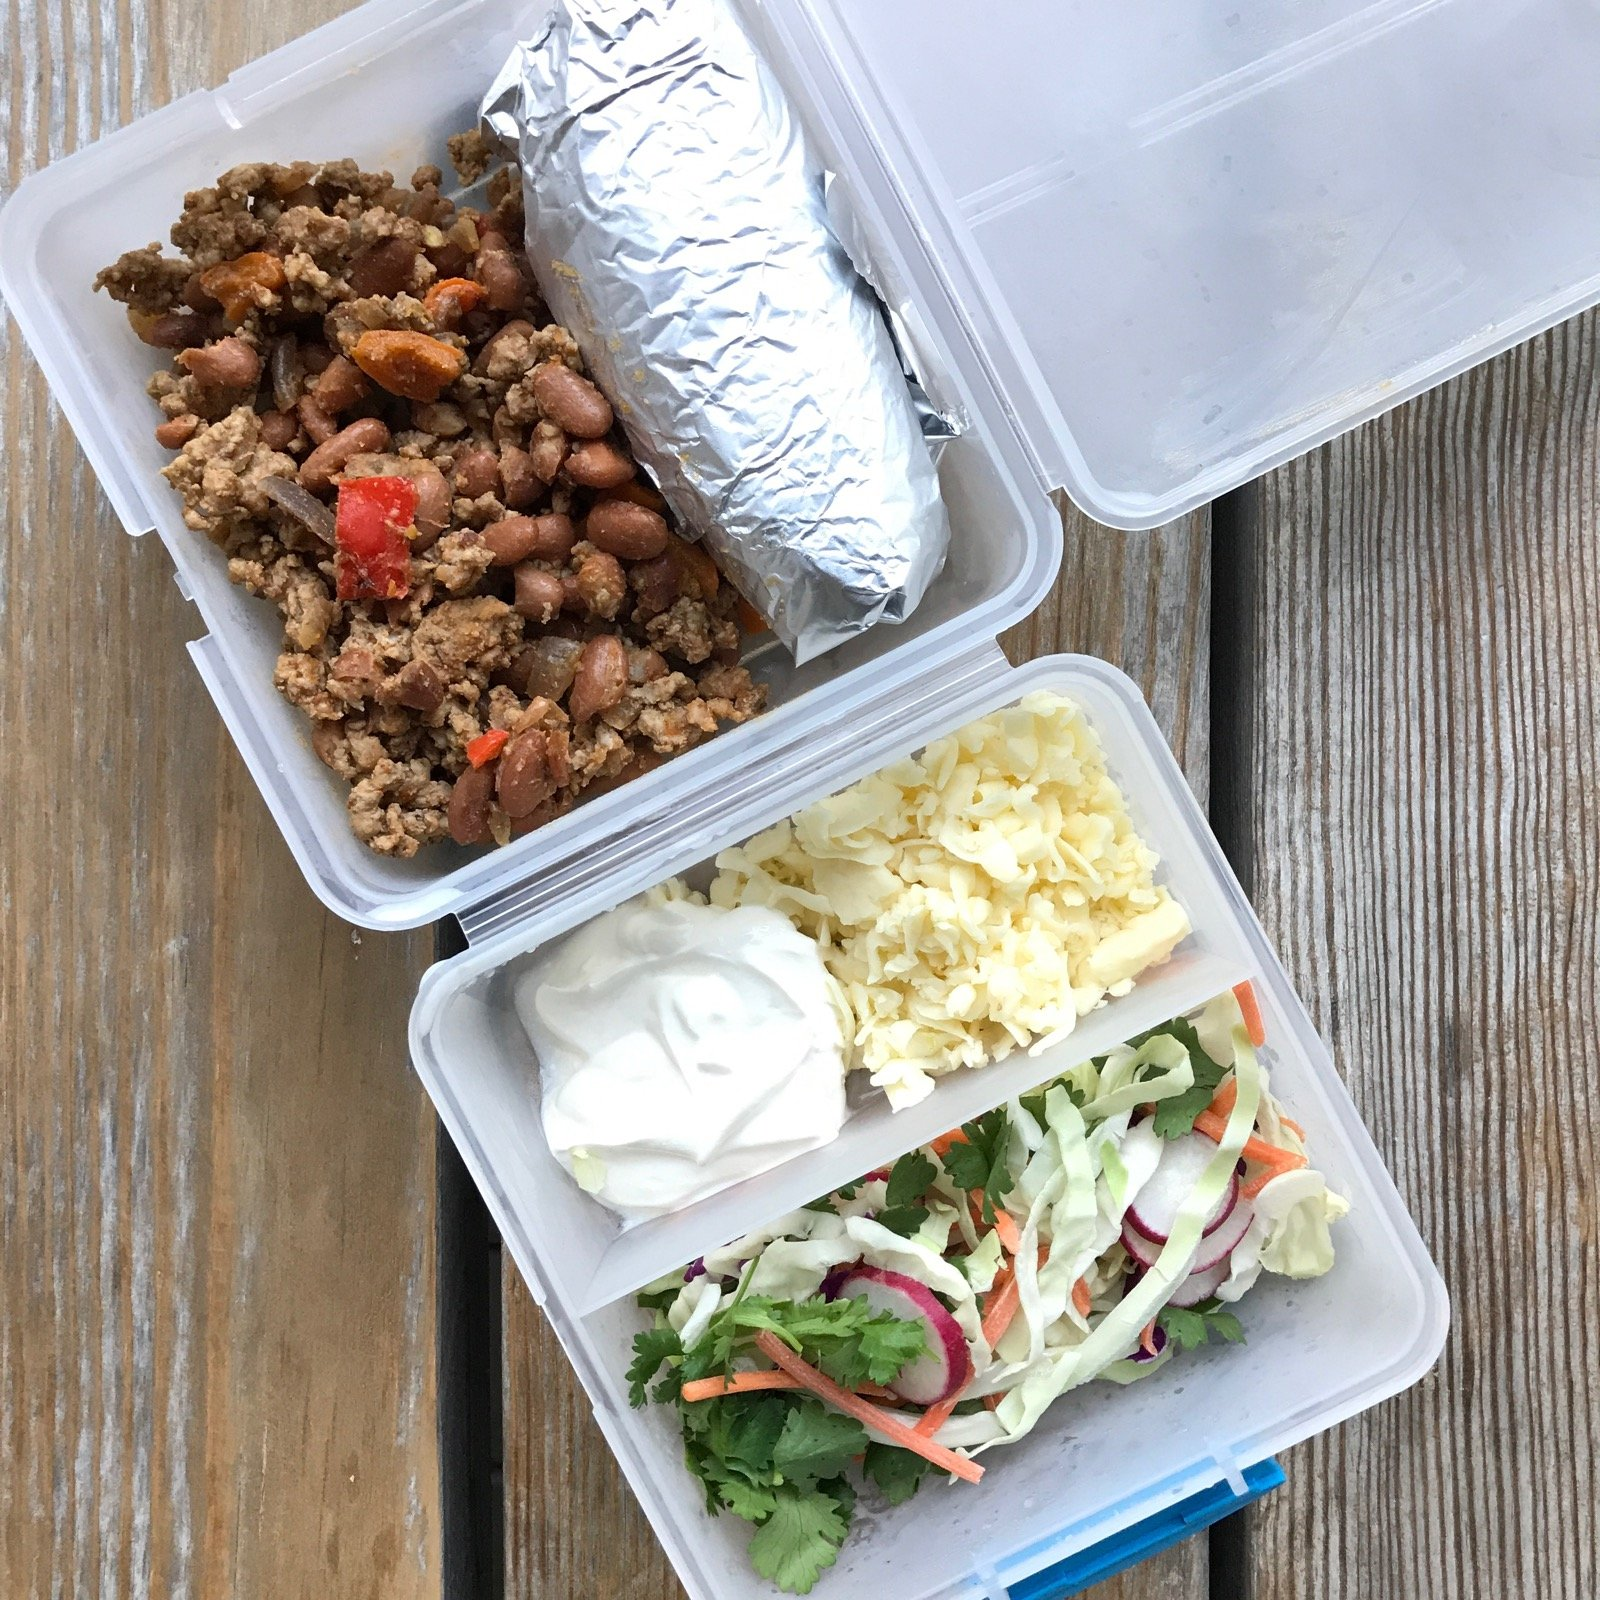 Packed school lunch of Leftover taco meat/veggies/beans, Corn tortilla (in foil), Sour cream Cheese Cabbage, cilantro and other veggies to go on top